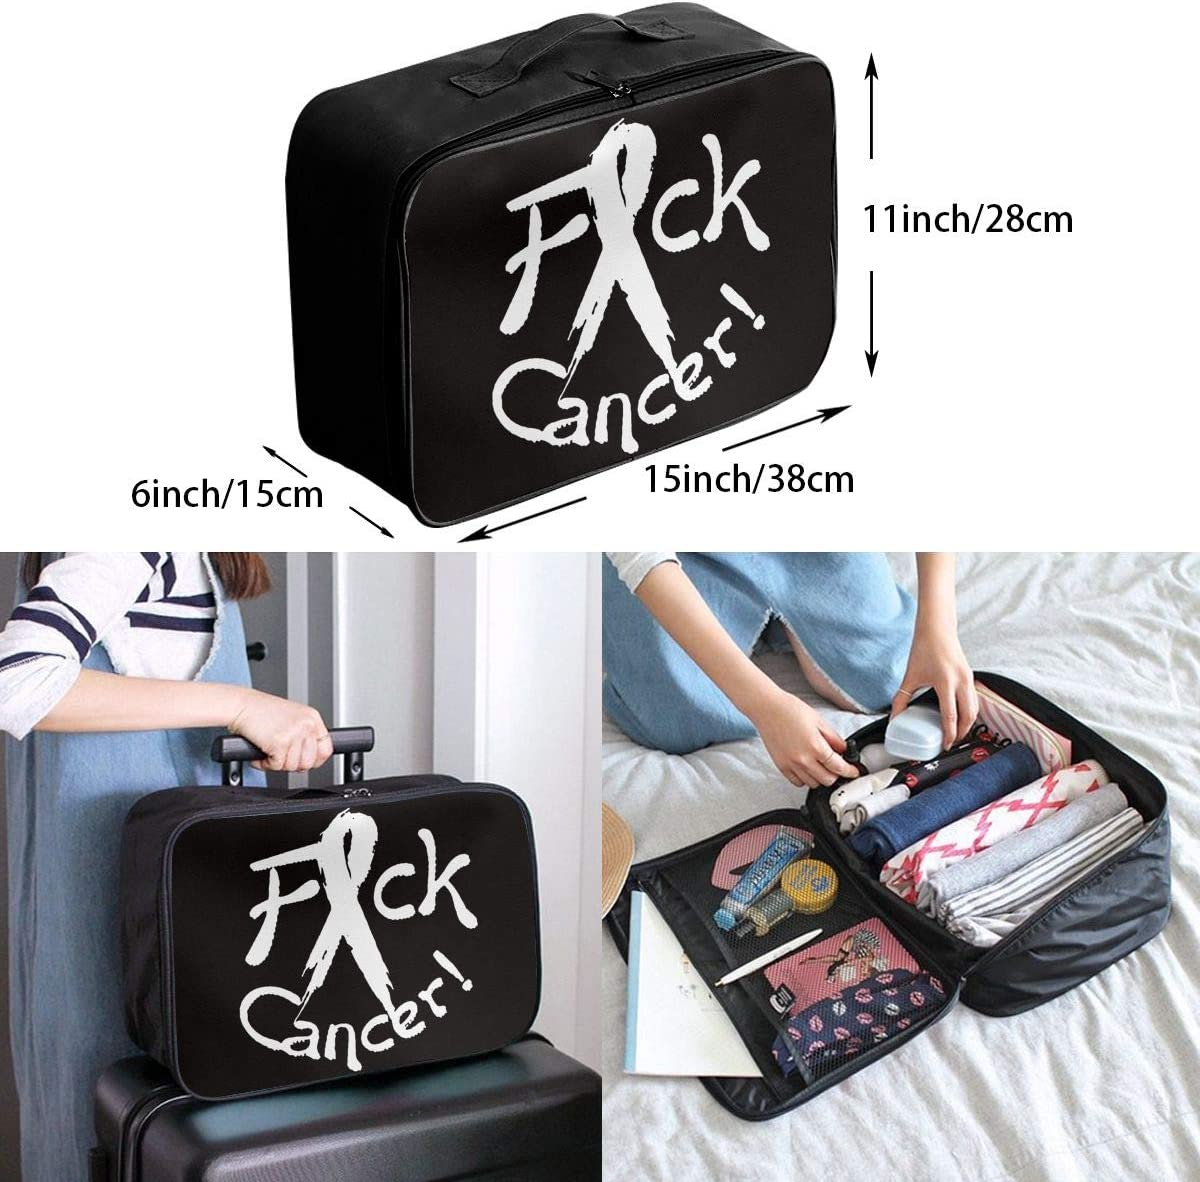 Fck Cancer Carry Lightweight Large Capacity Portable Outdoor Luggage Trolley Bag